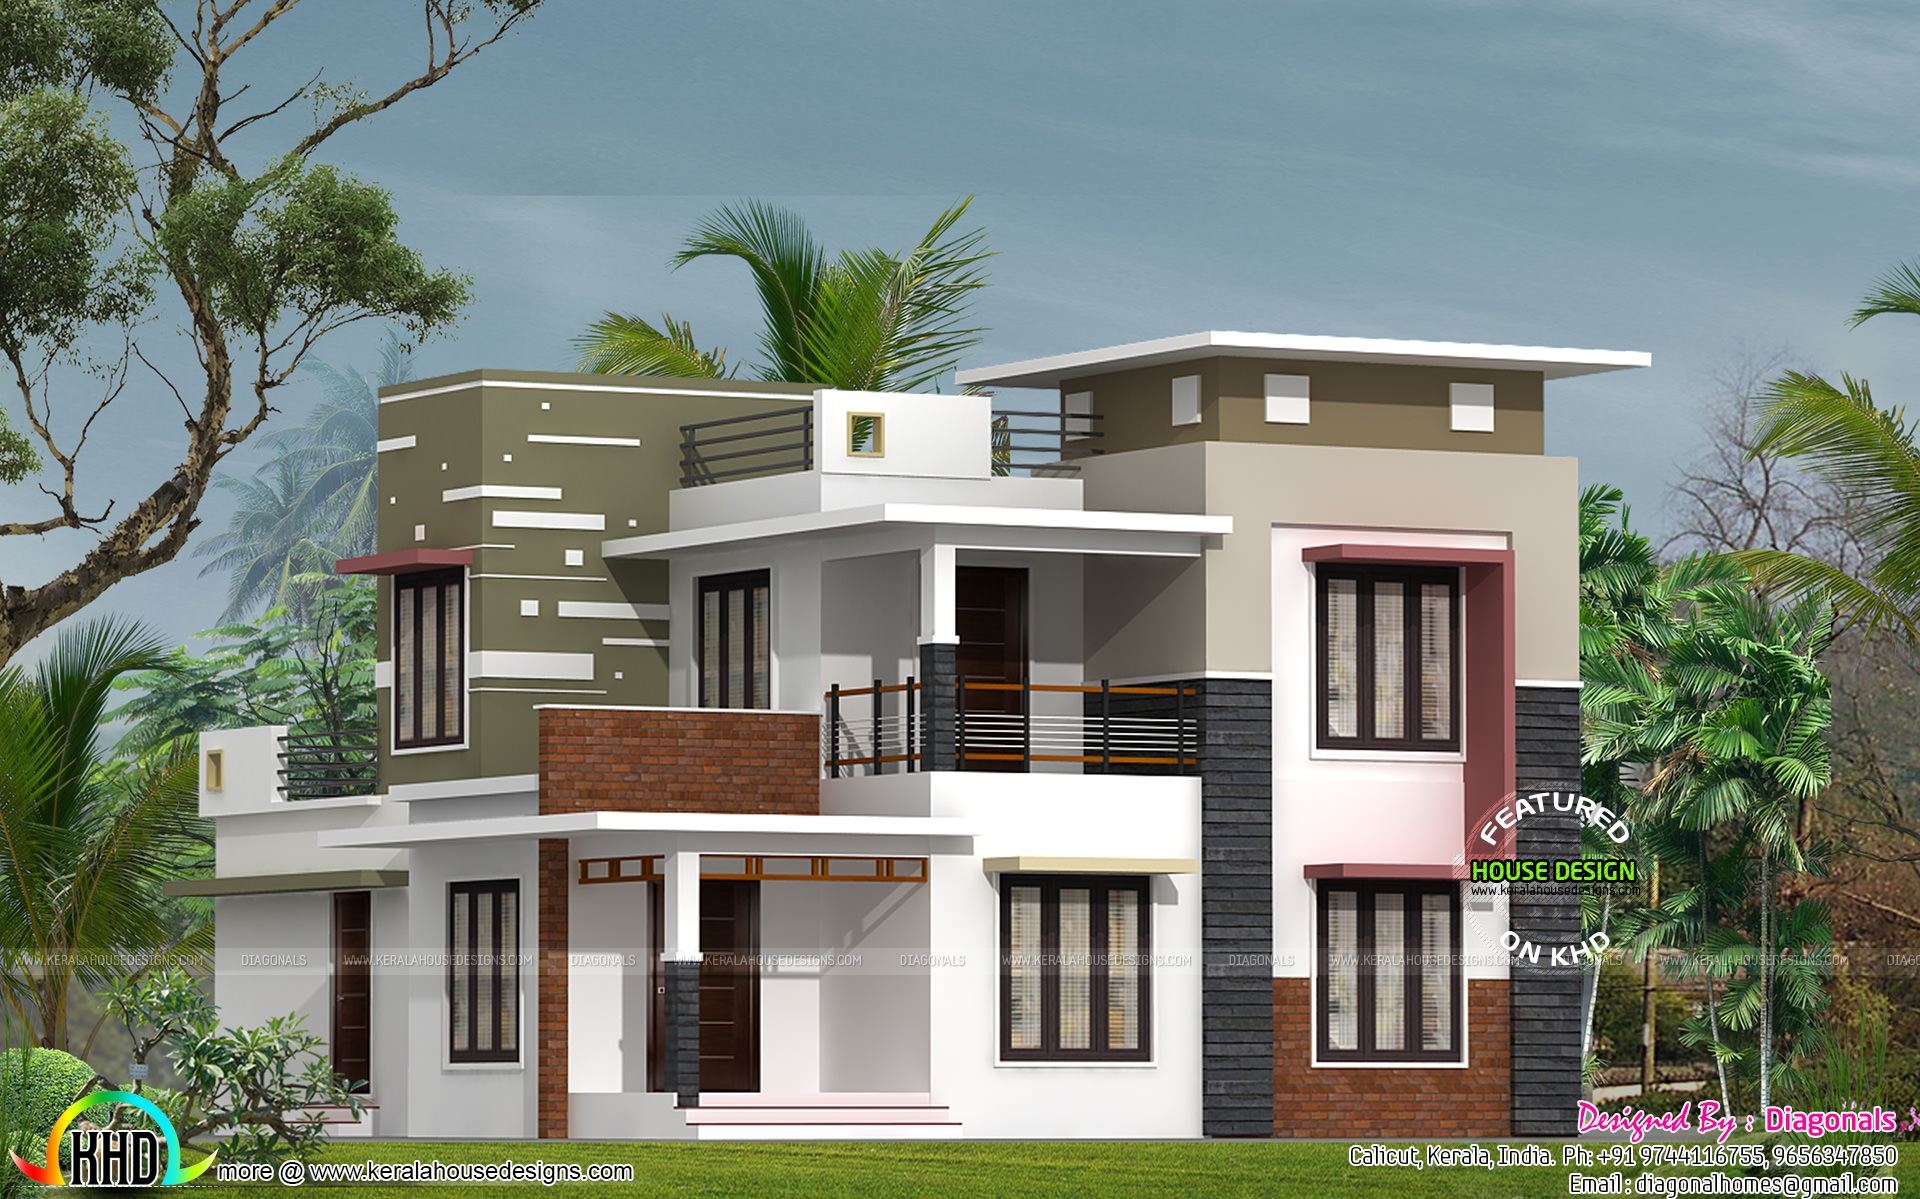 House details ground floor feet flat roof contemporary for Kerala home design flat roof elevation